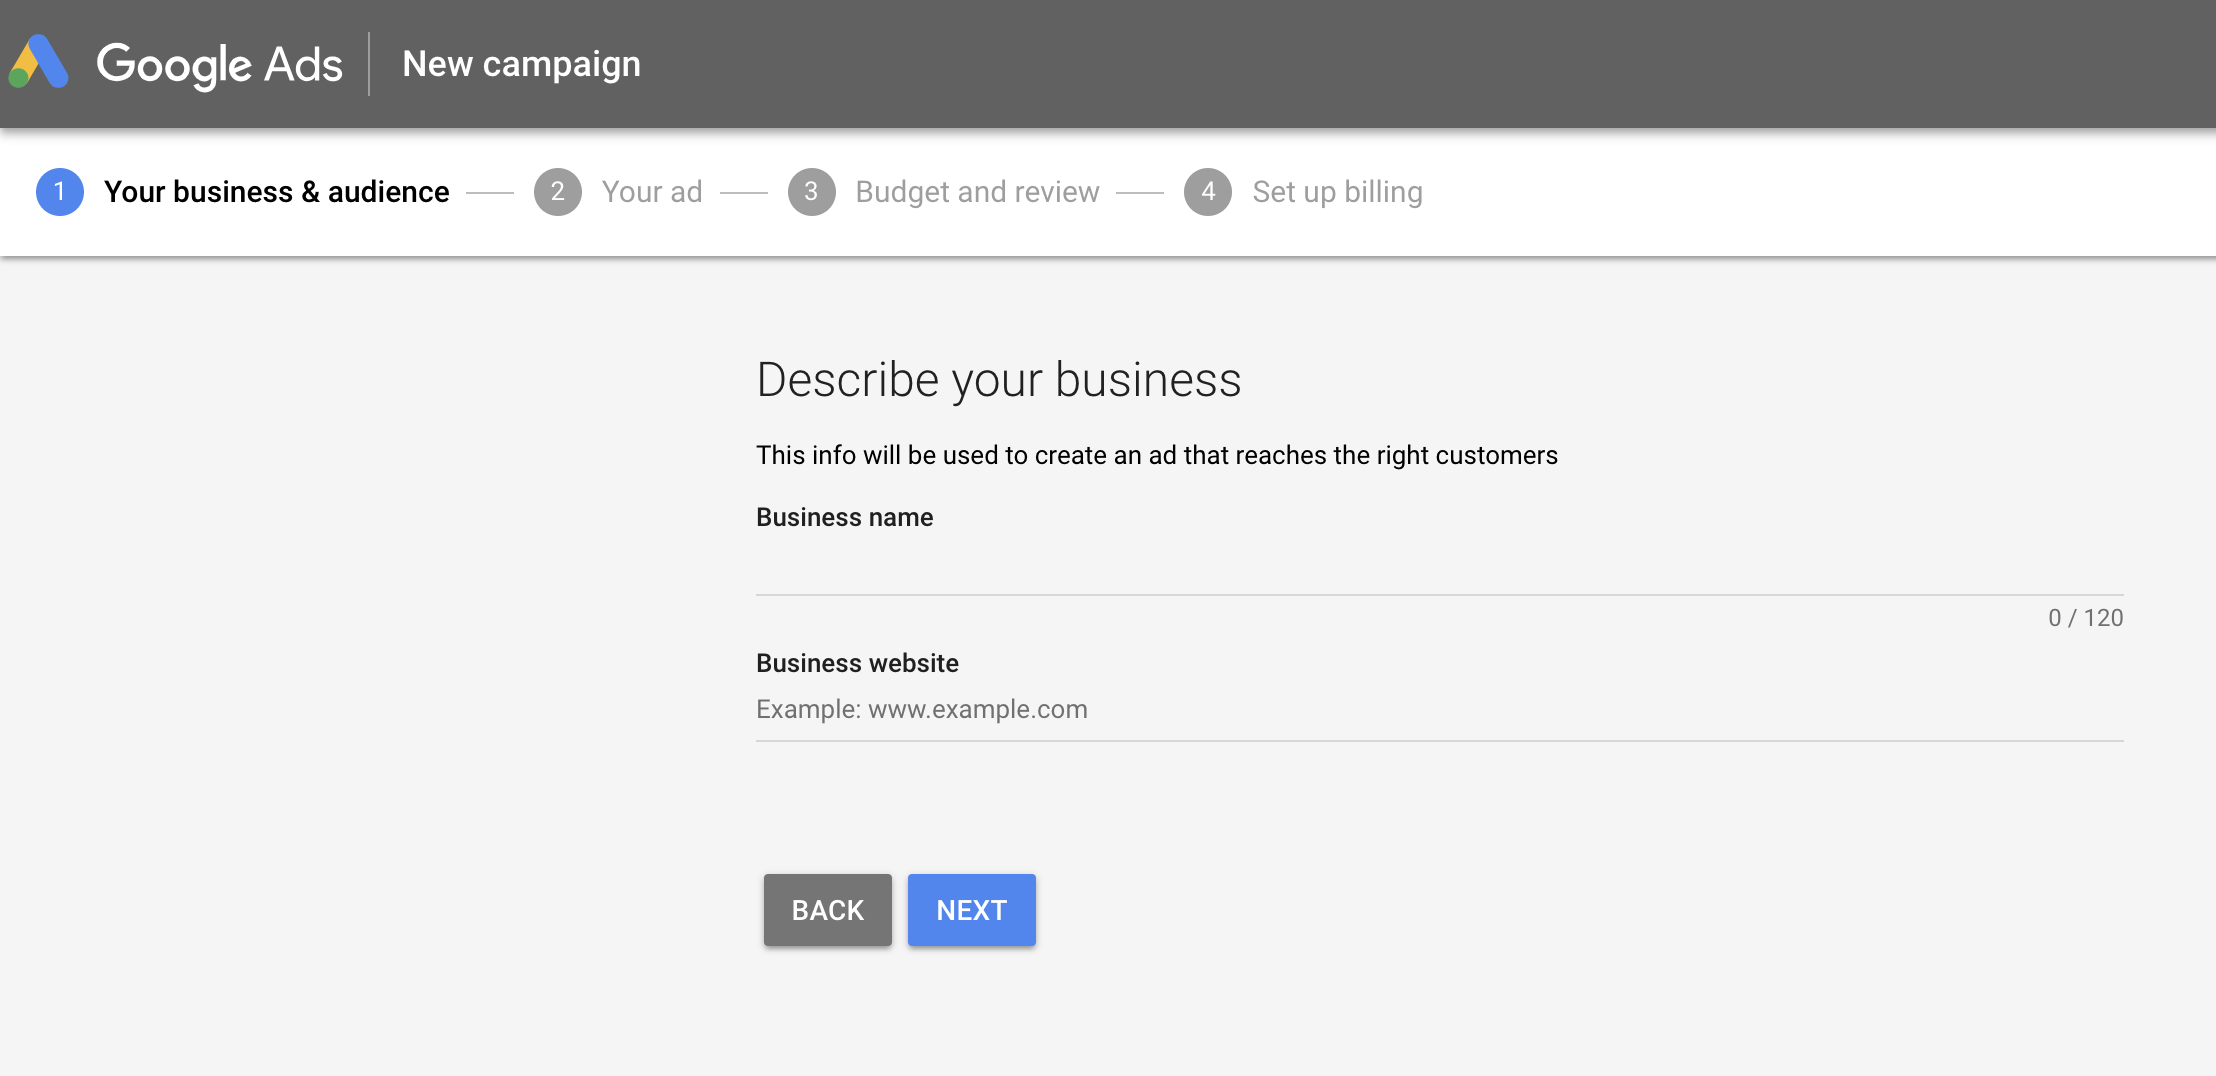 creating-a-new-campaign-google-ads